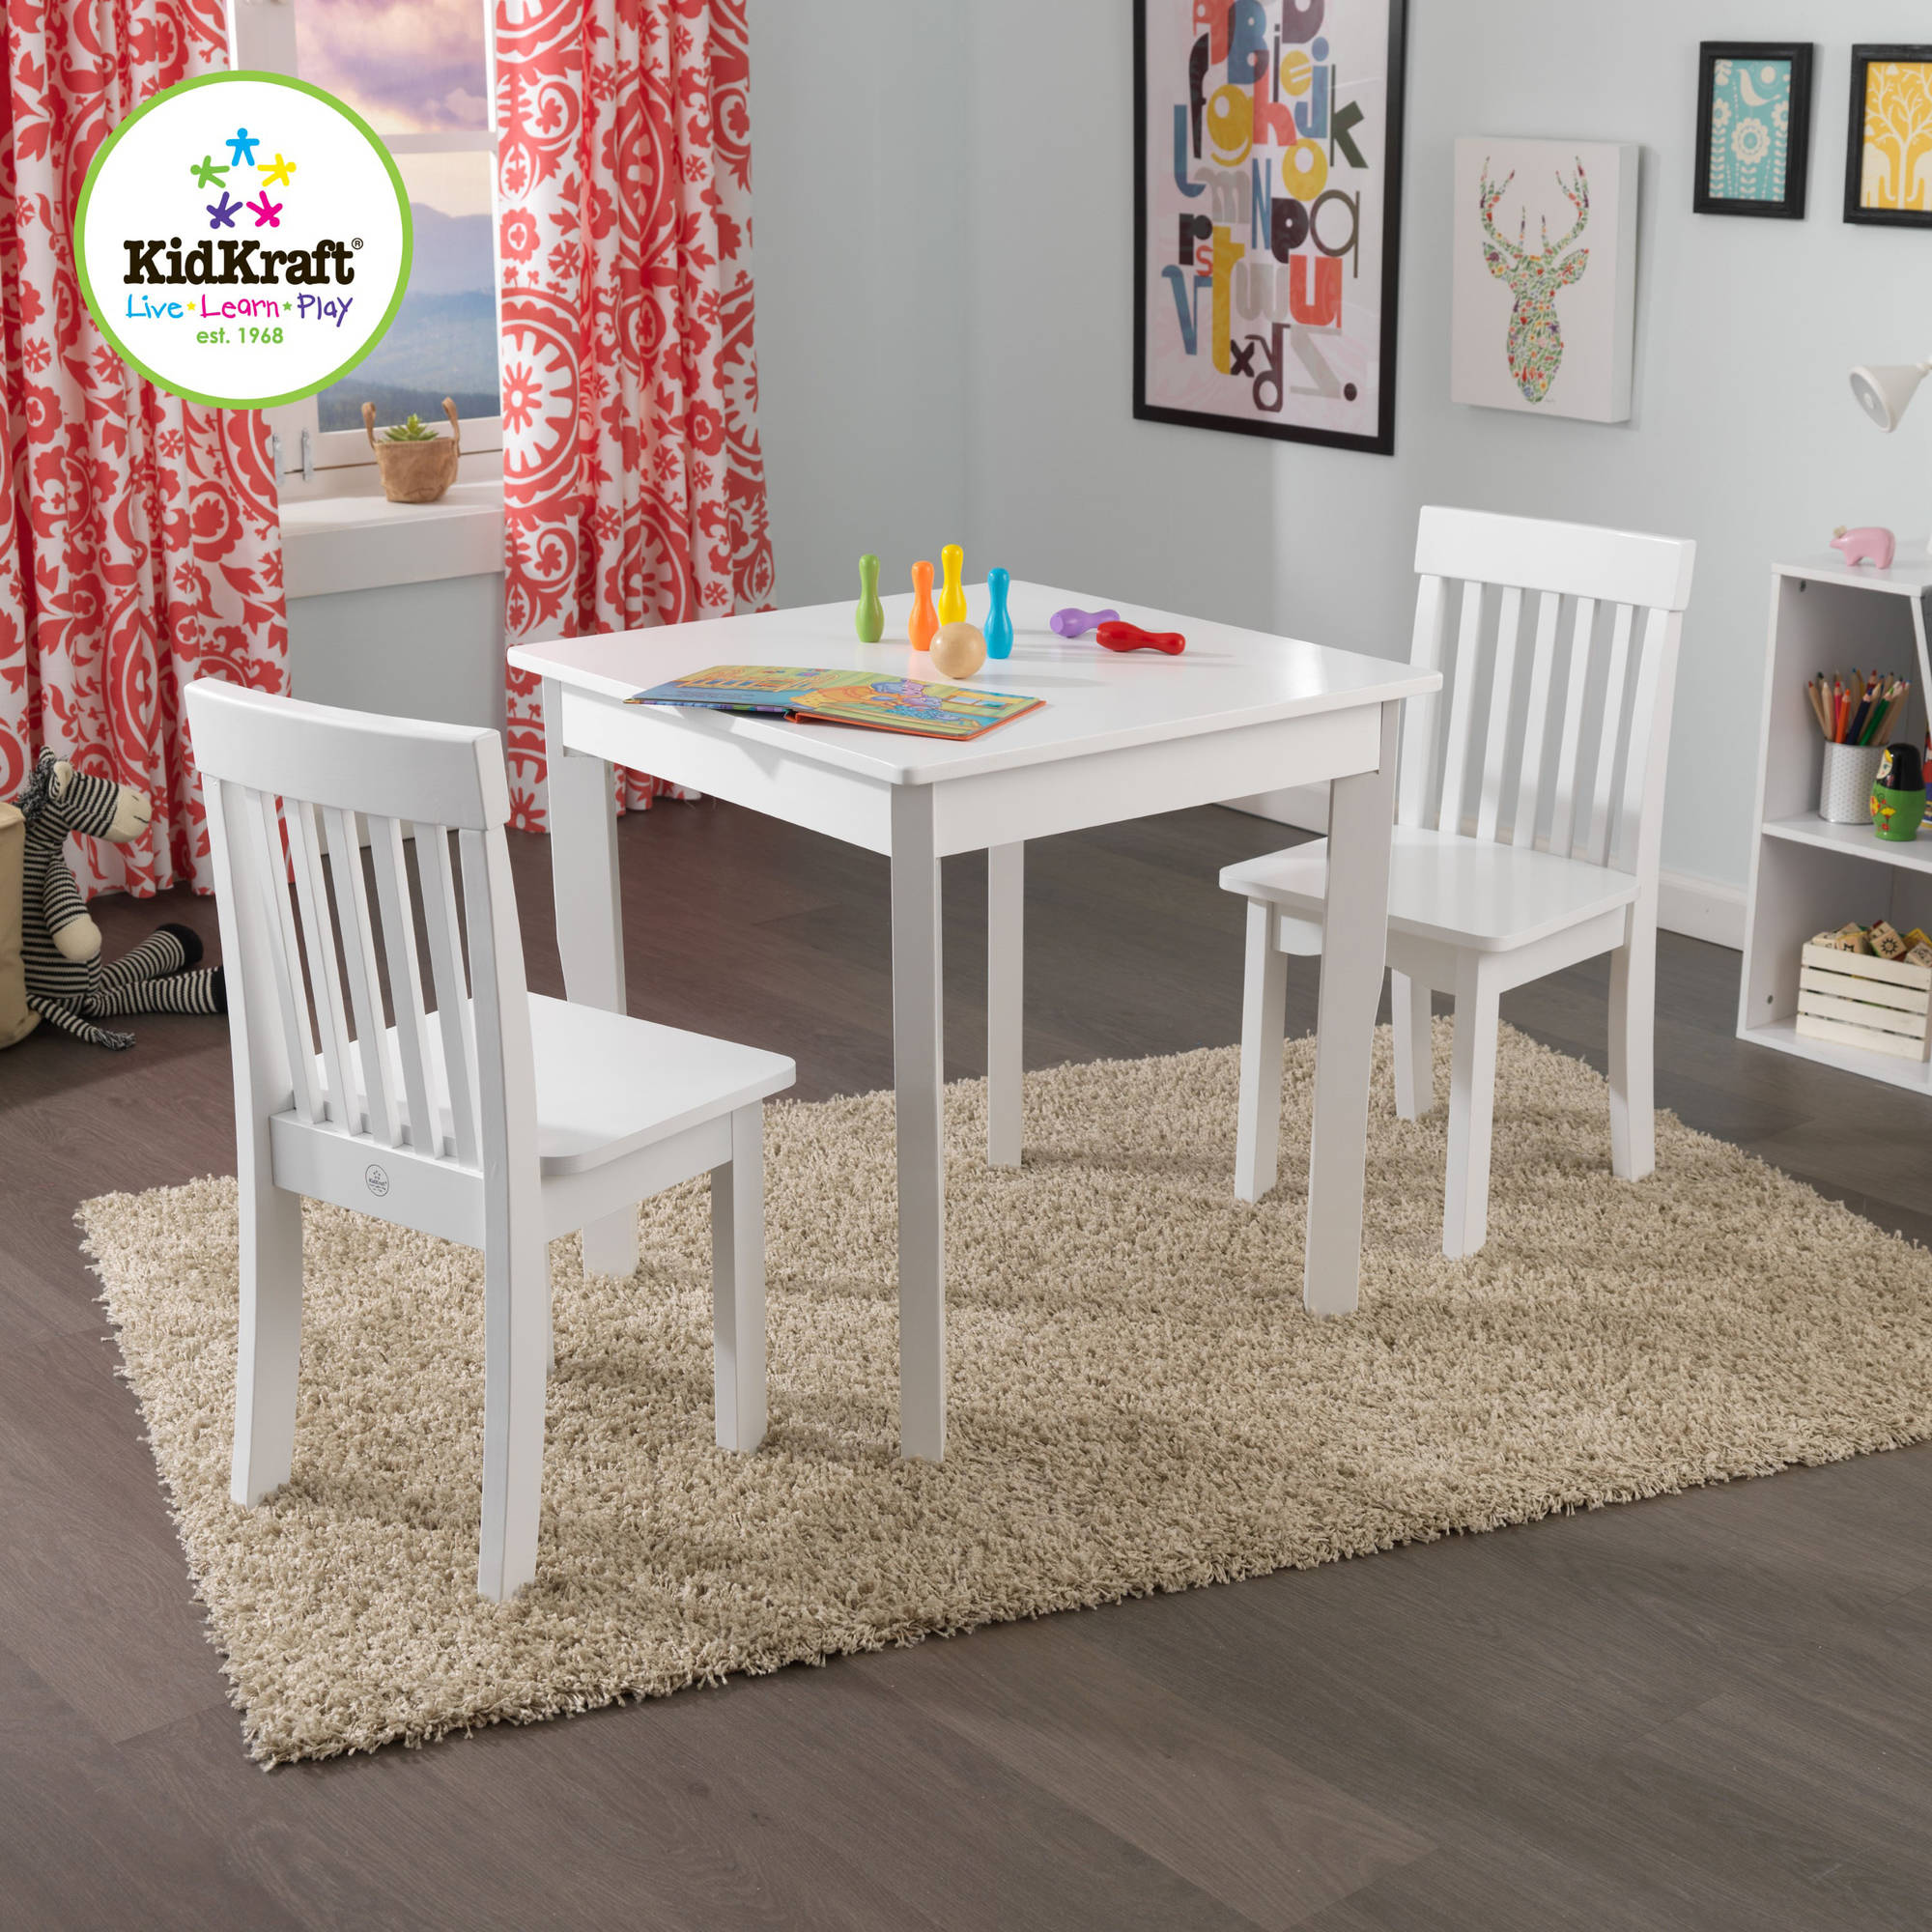 KidKraft Square Table and 2 Avalon Chairs Set White